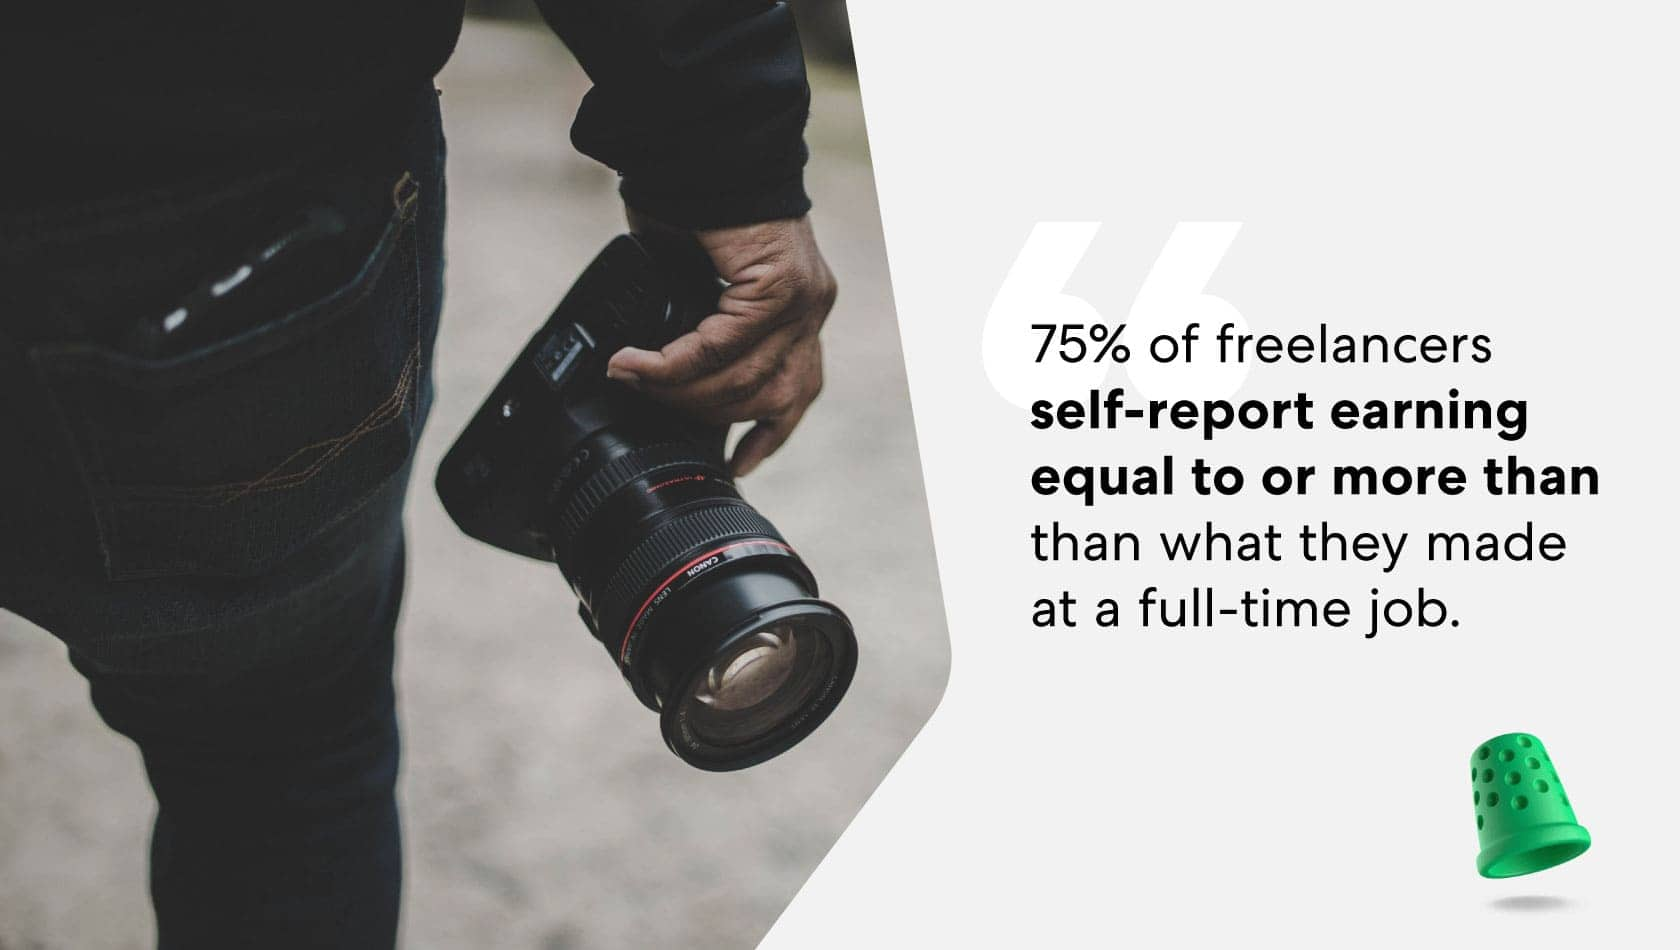 freelance-equal-or-more-earnings